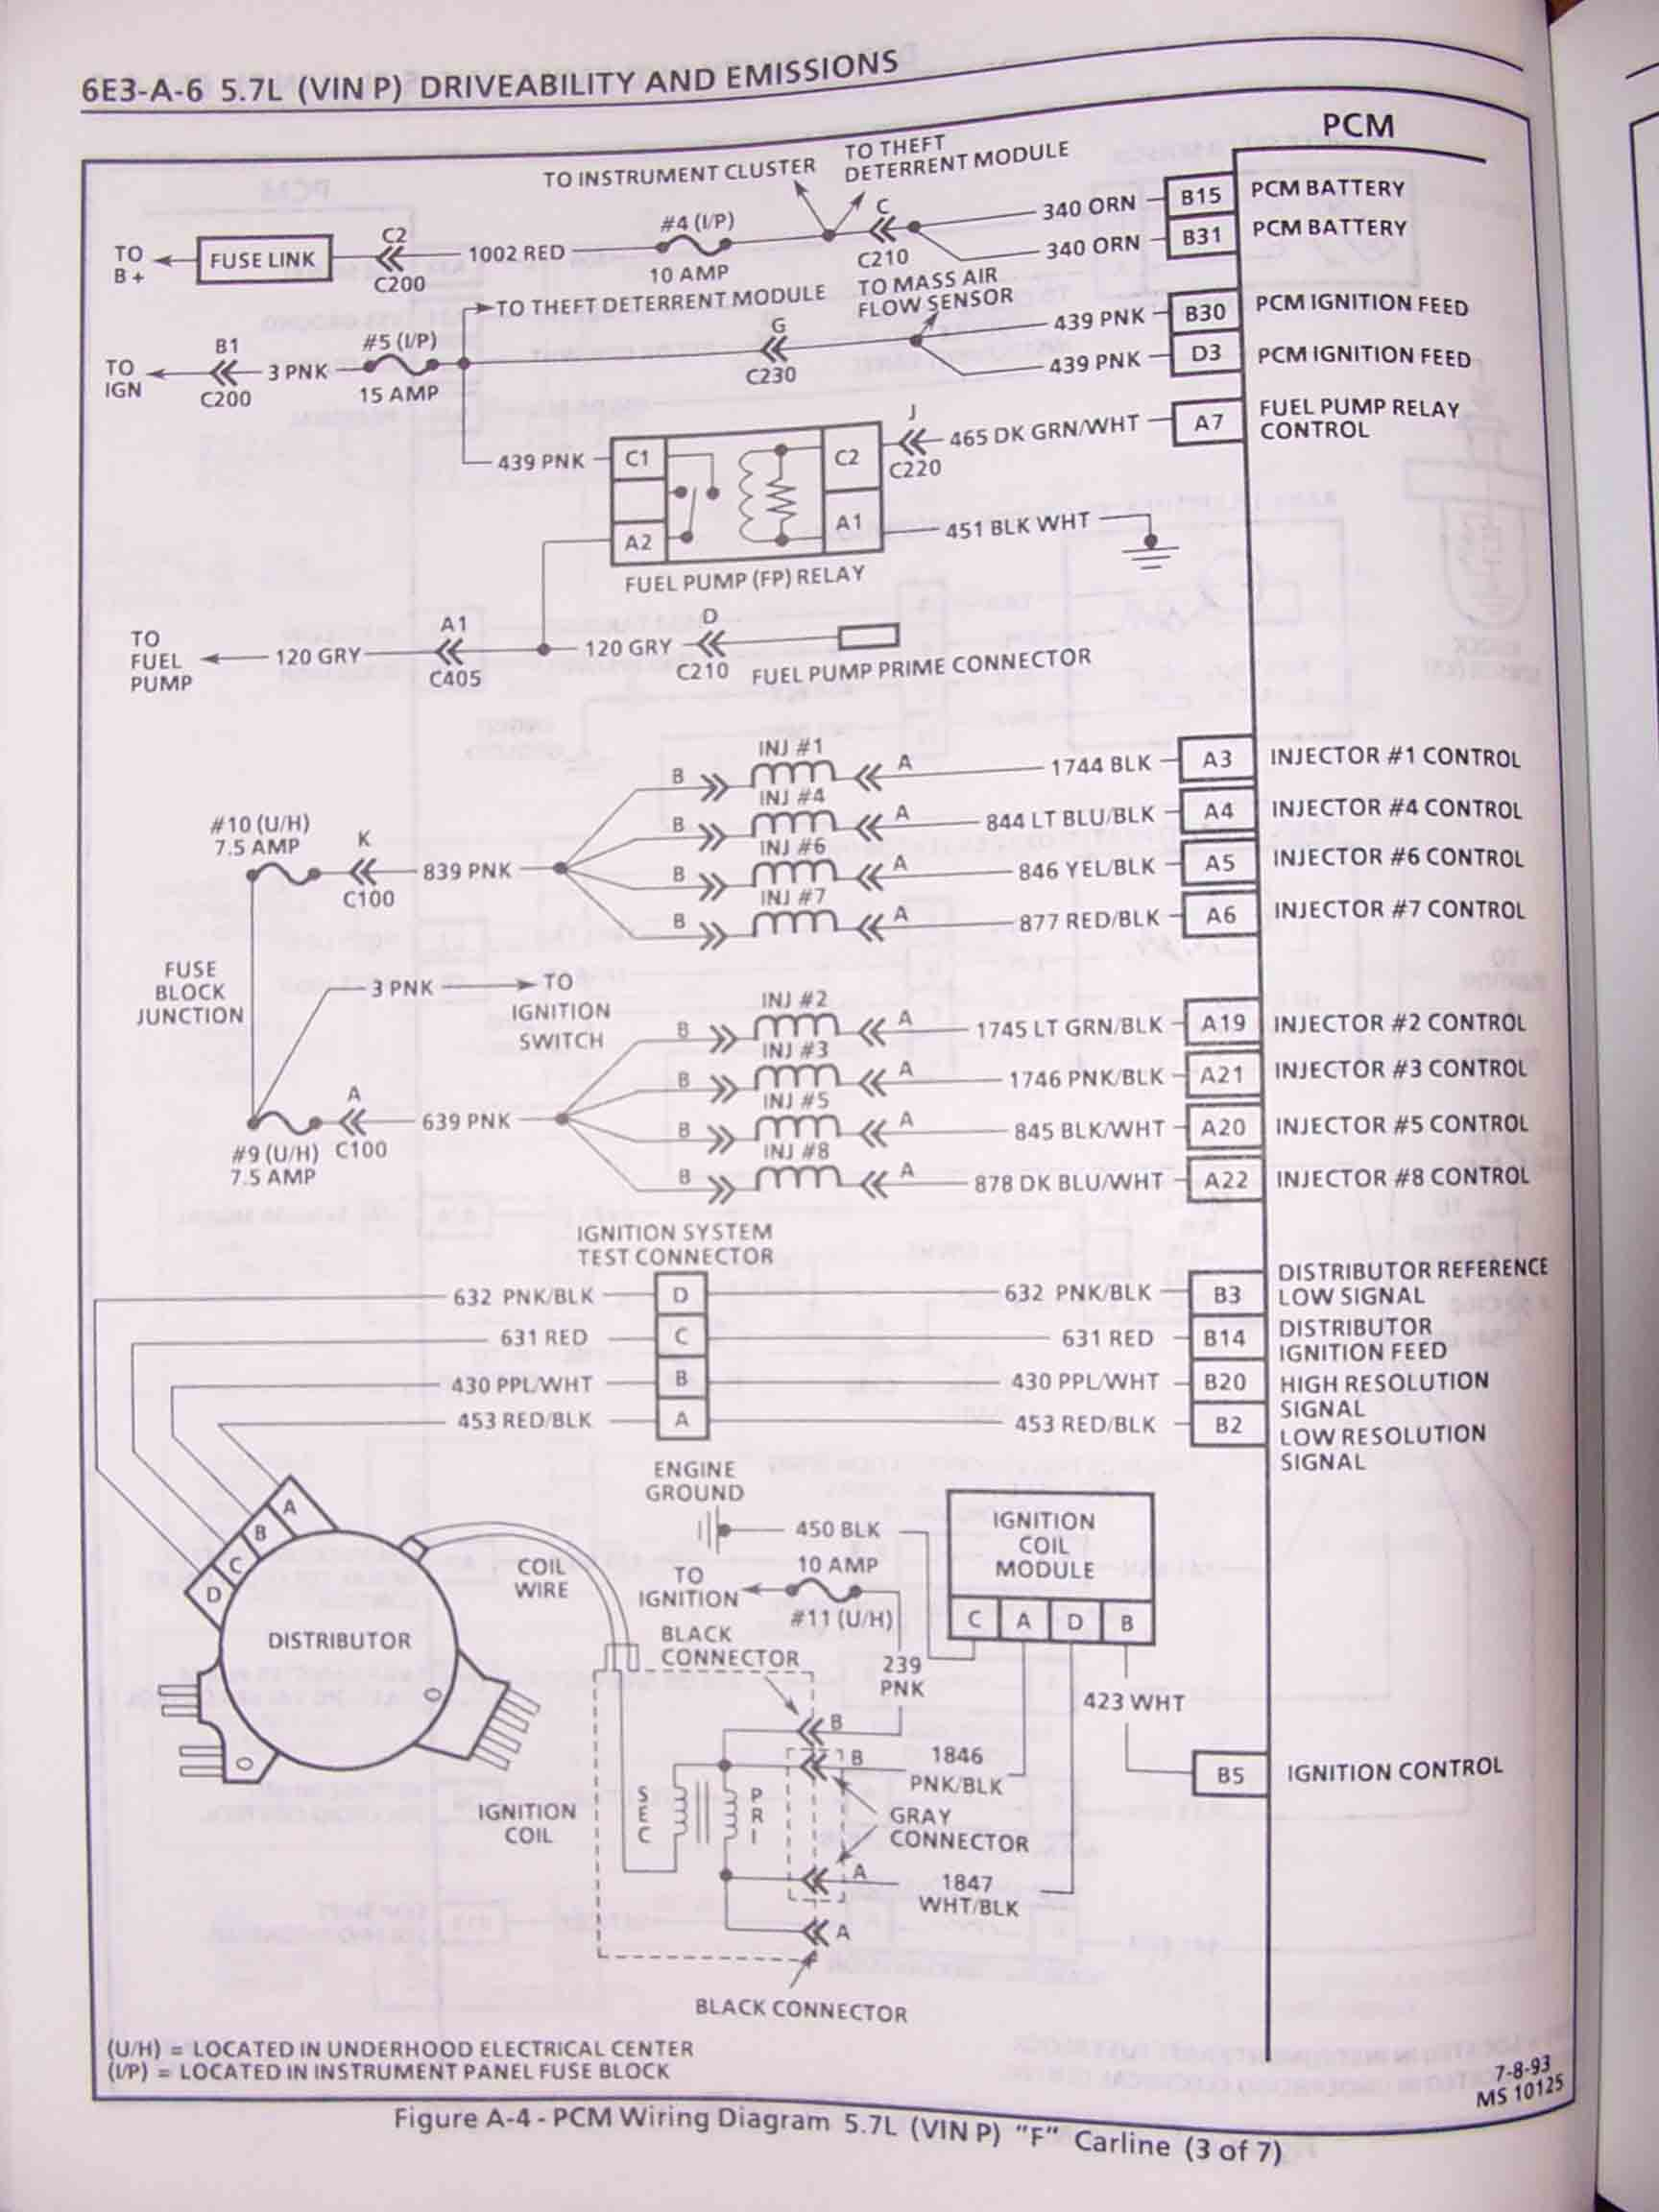 hight resolution of wire harness diagram 95 camaro z28 wiring diagram perfomance 1995 camaro z28 wiring diagram 95 camaro z28 wiring diagram